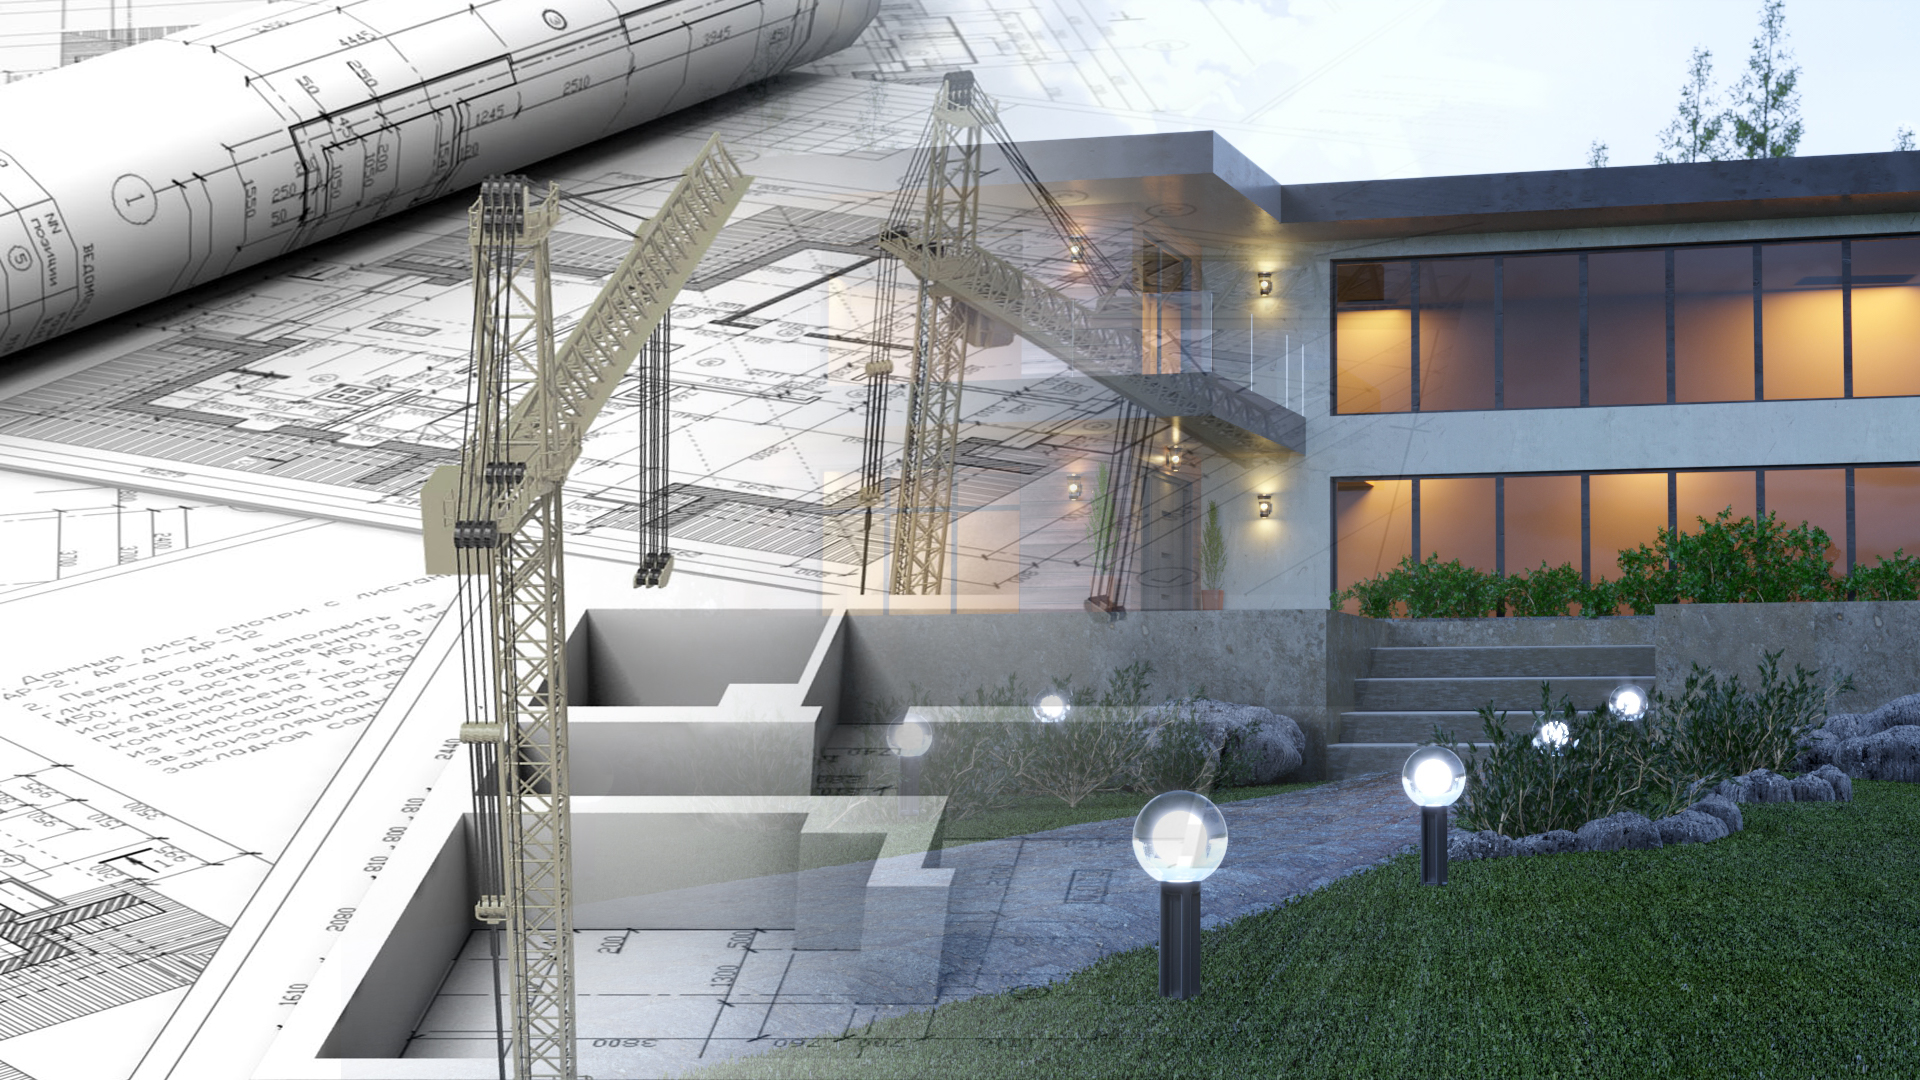 The Value of 3D Home Models in Construction